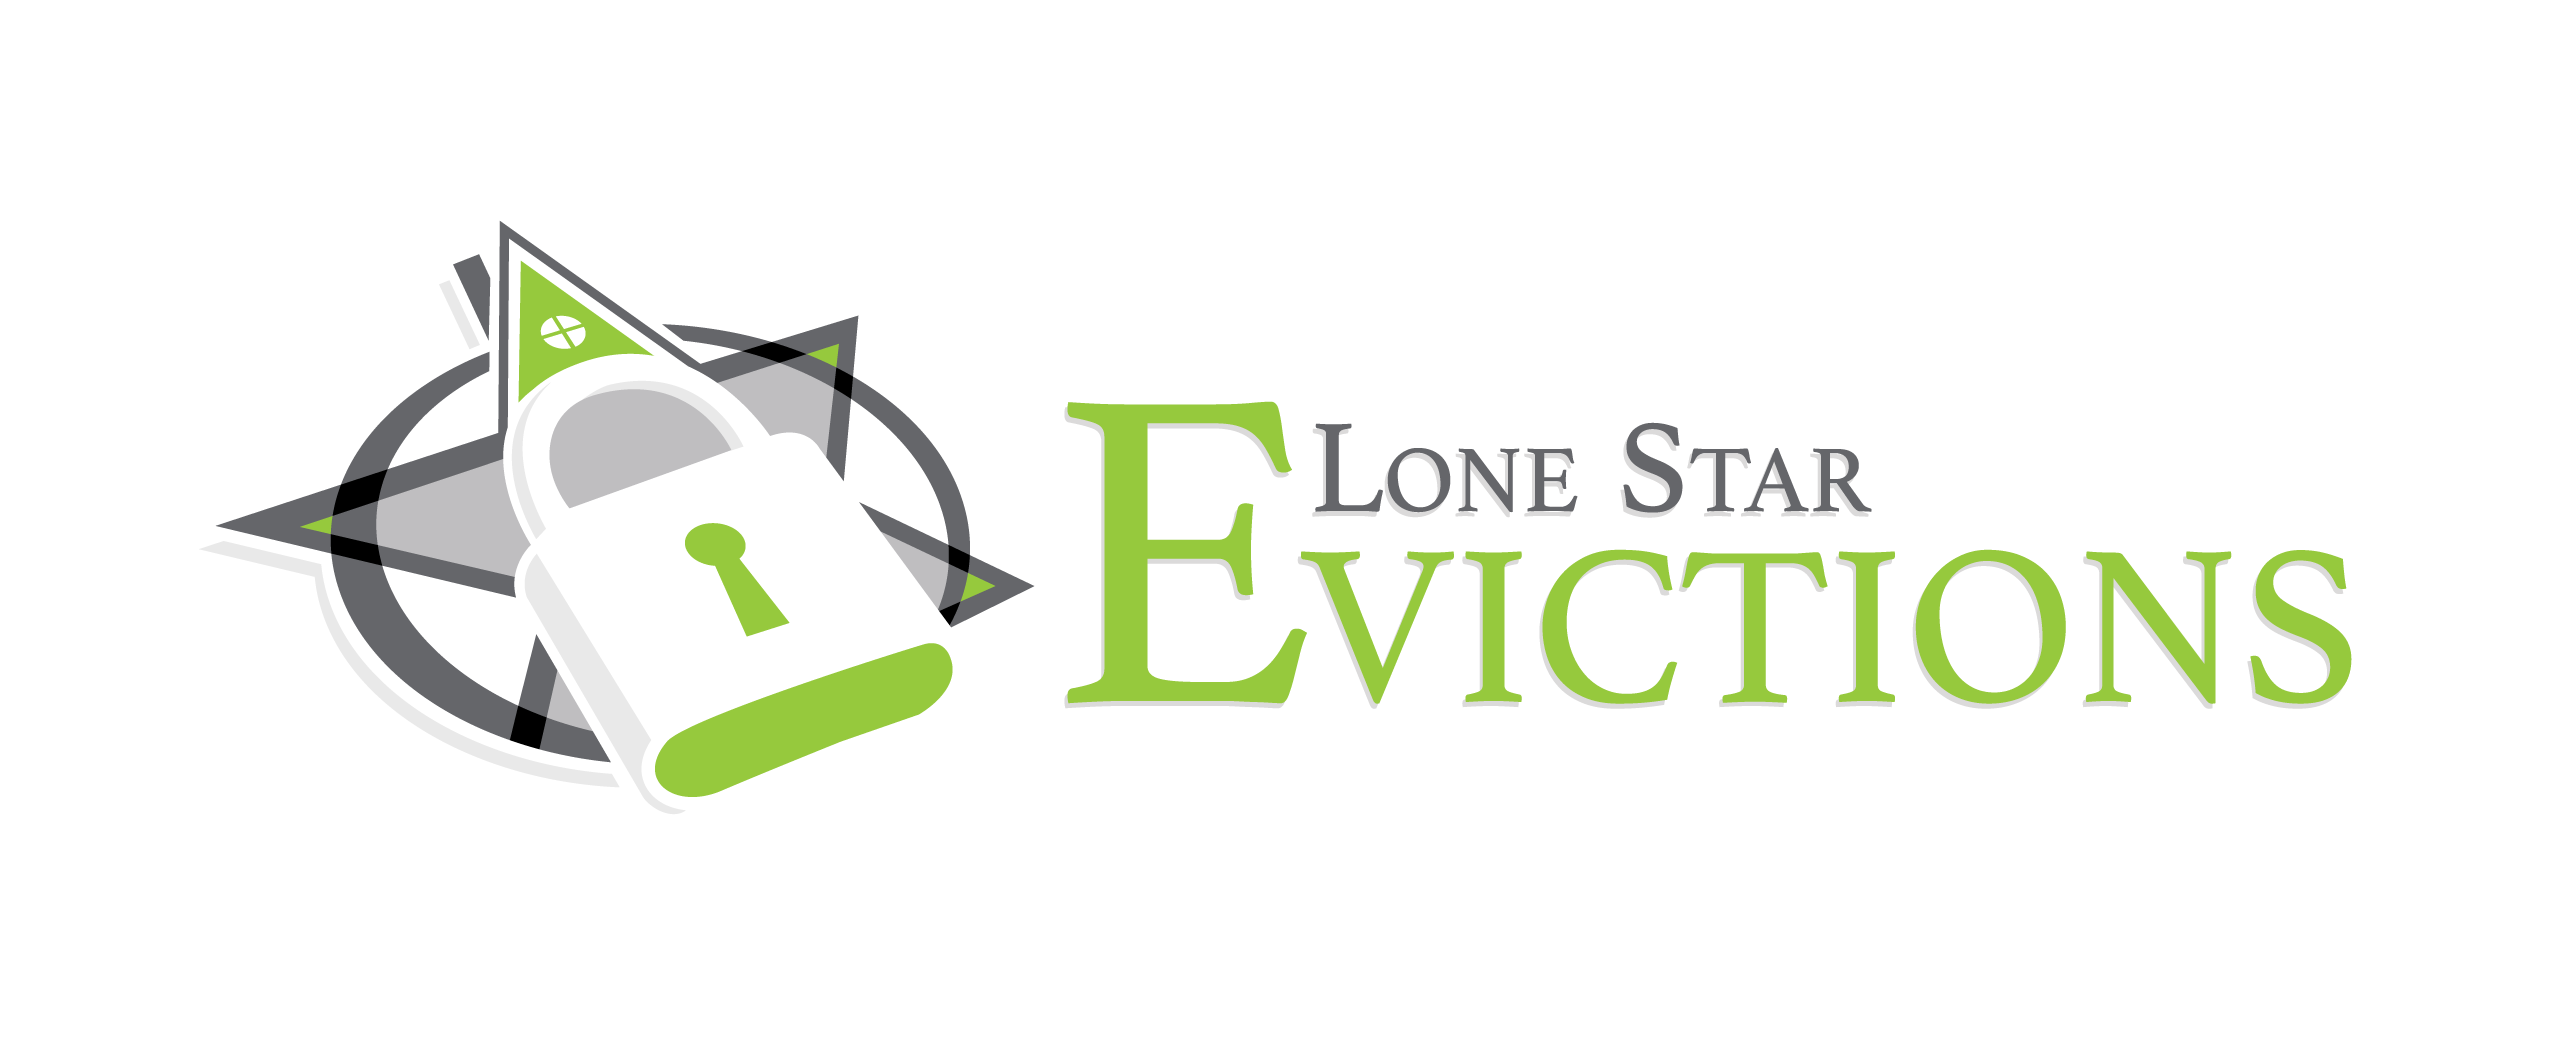 Lone Star Evictions